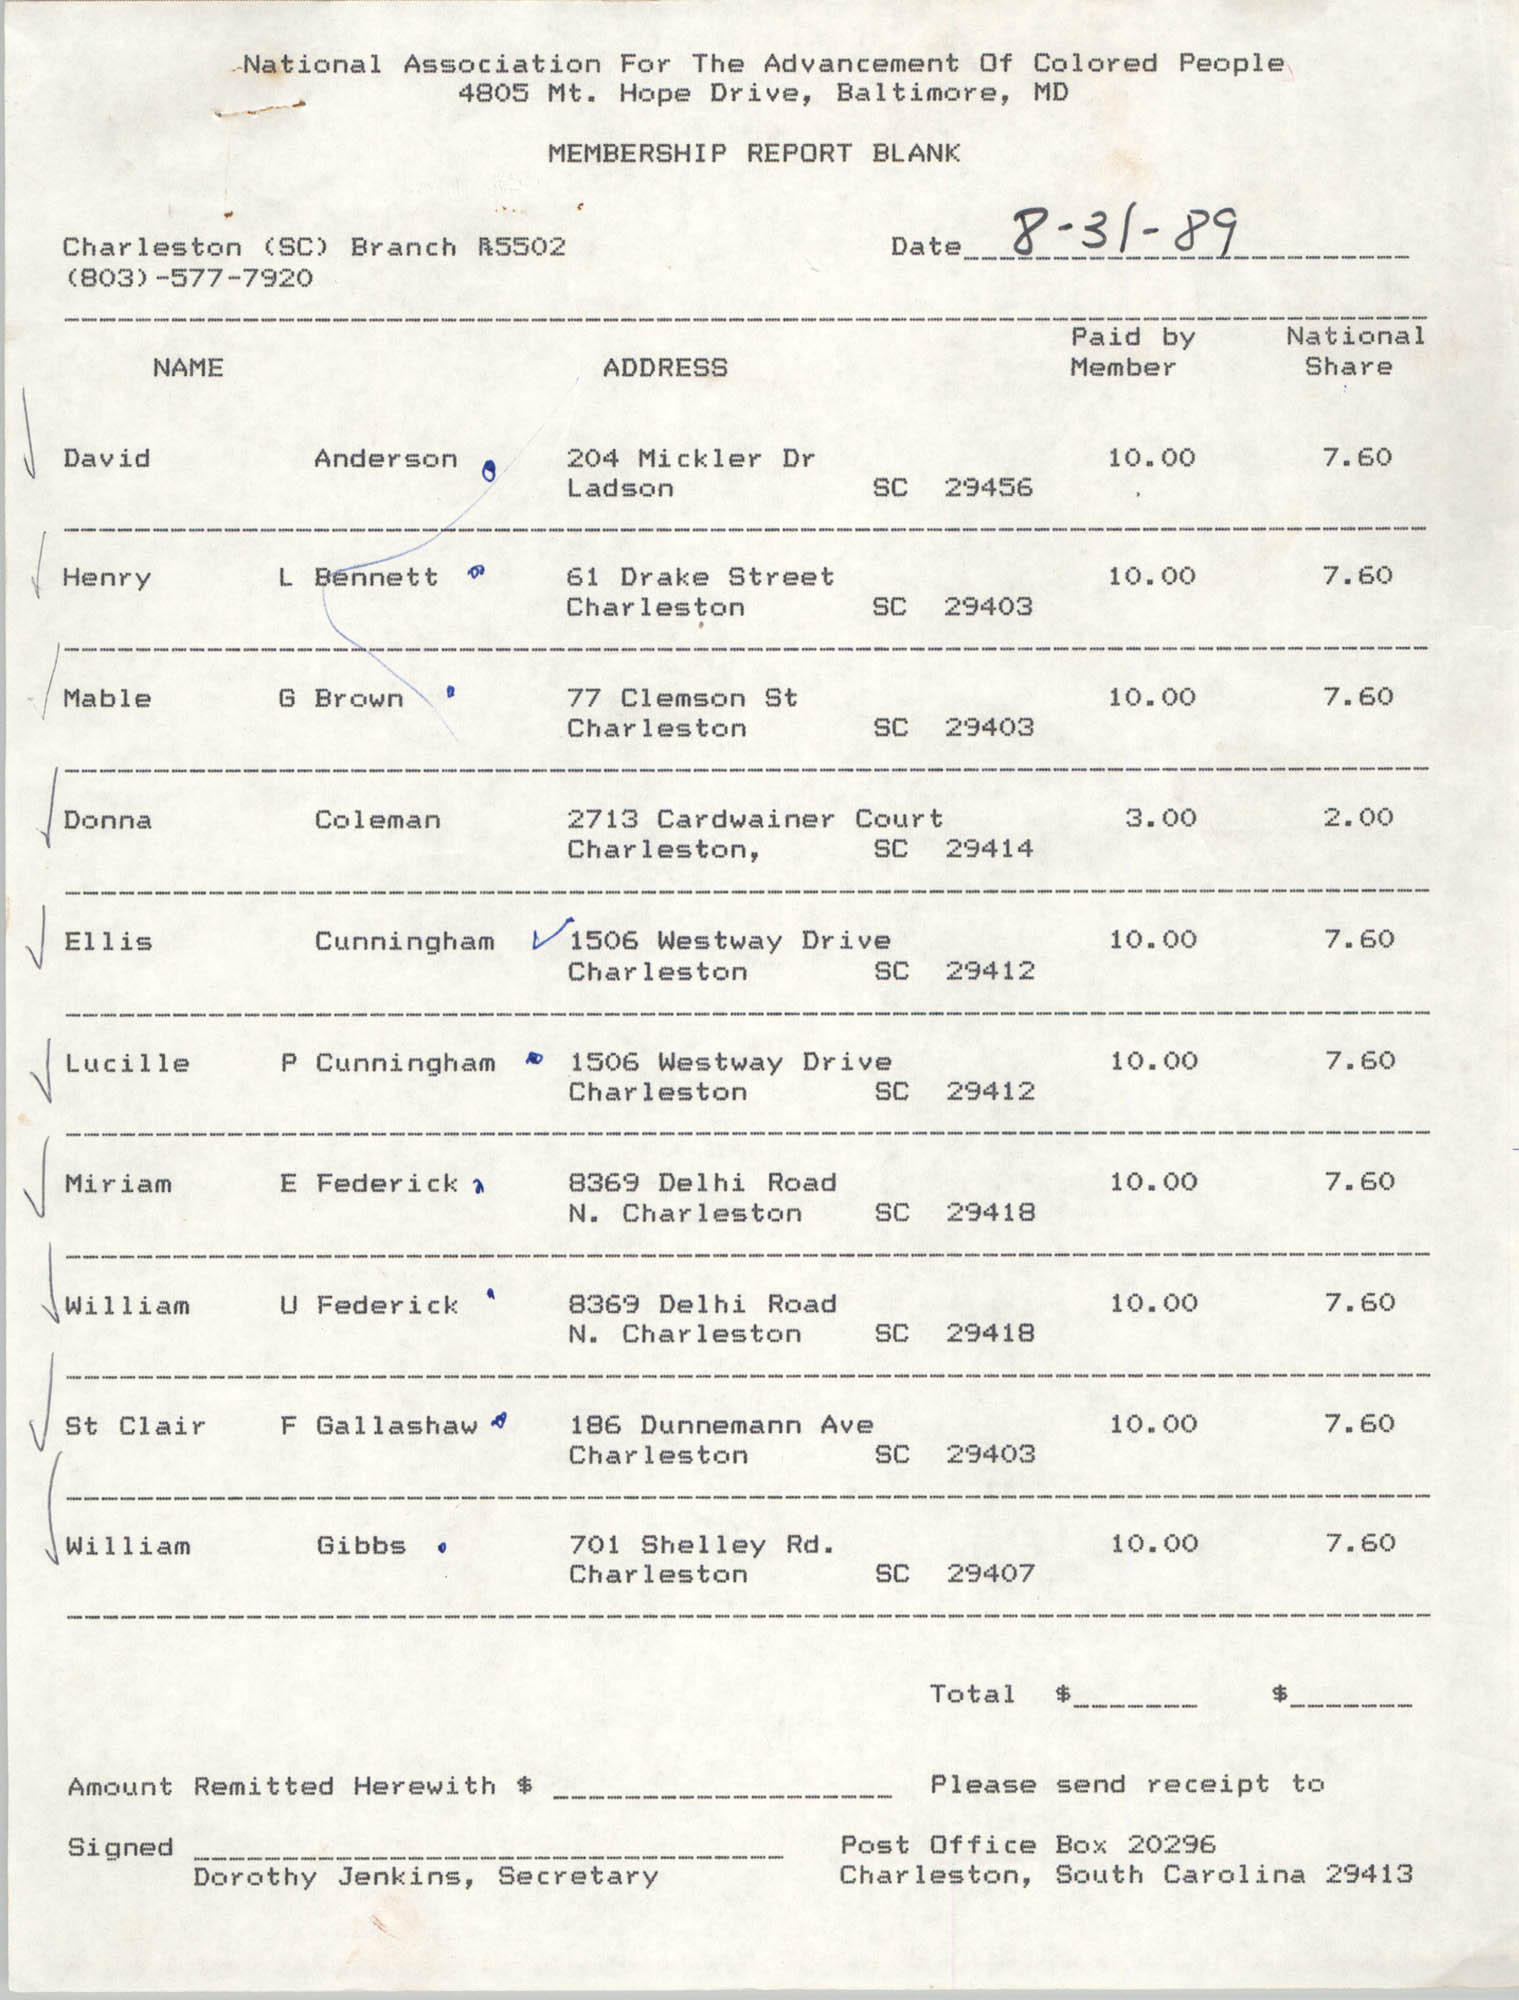 Membership Report Blank, Charleston Branch of the NAACP, Dorothy Jenkins, August 31, 1989